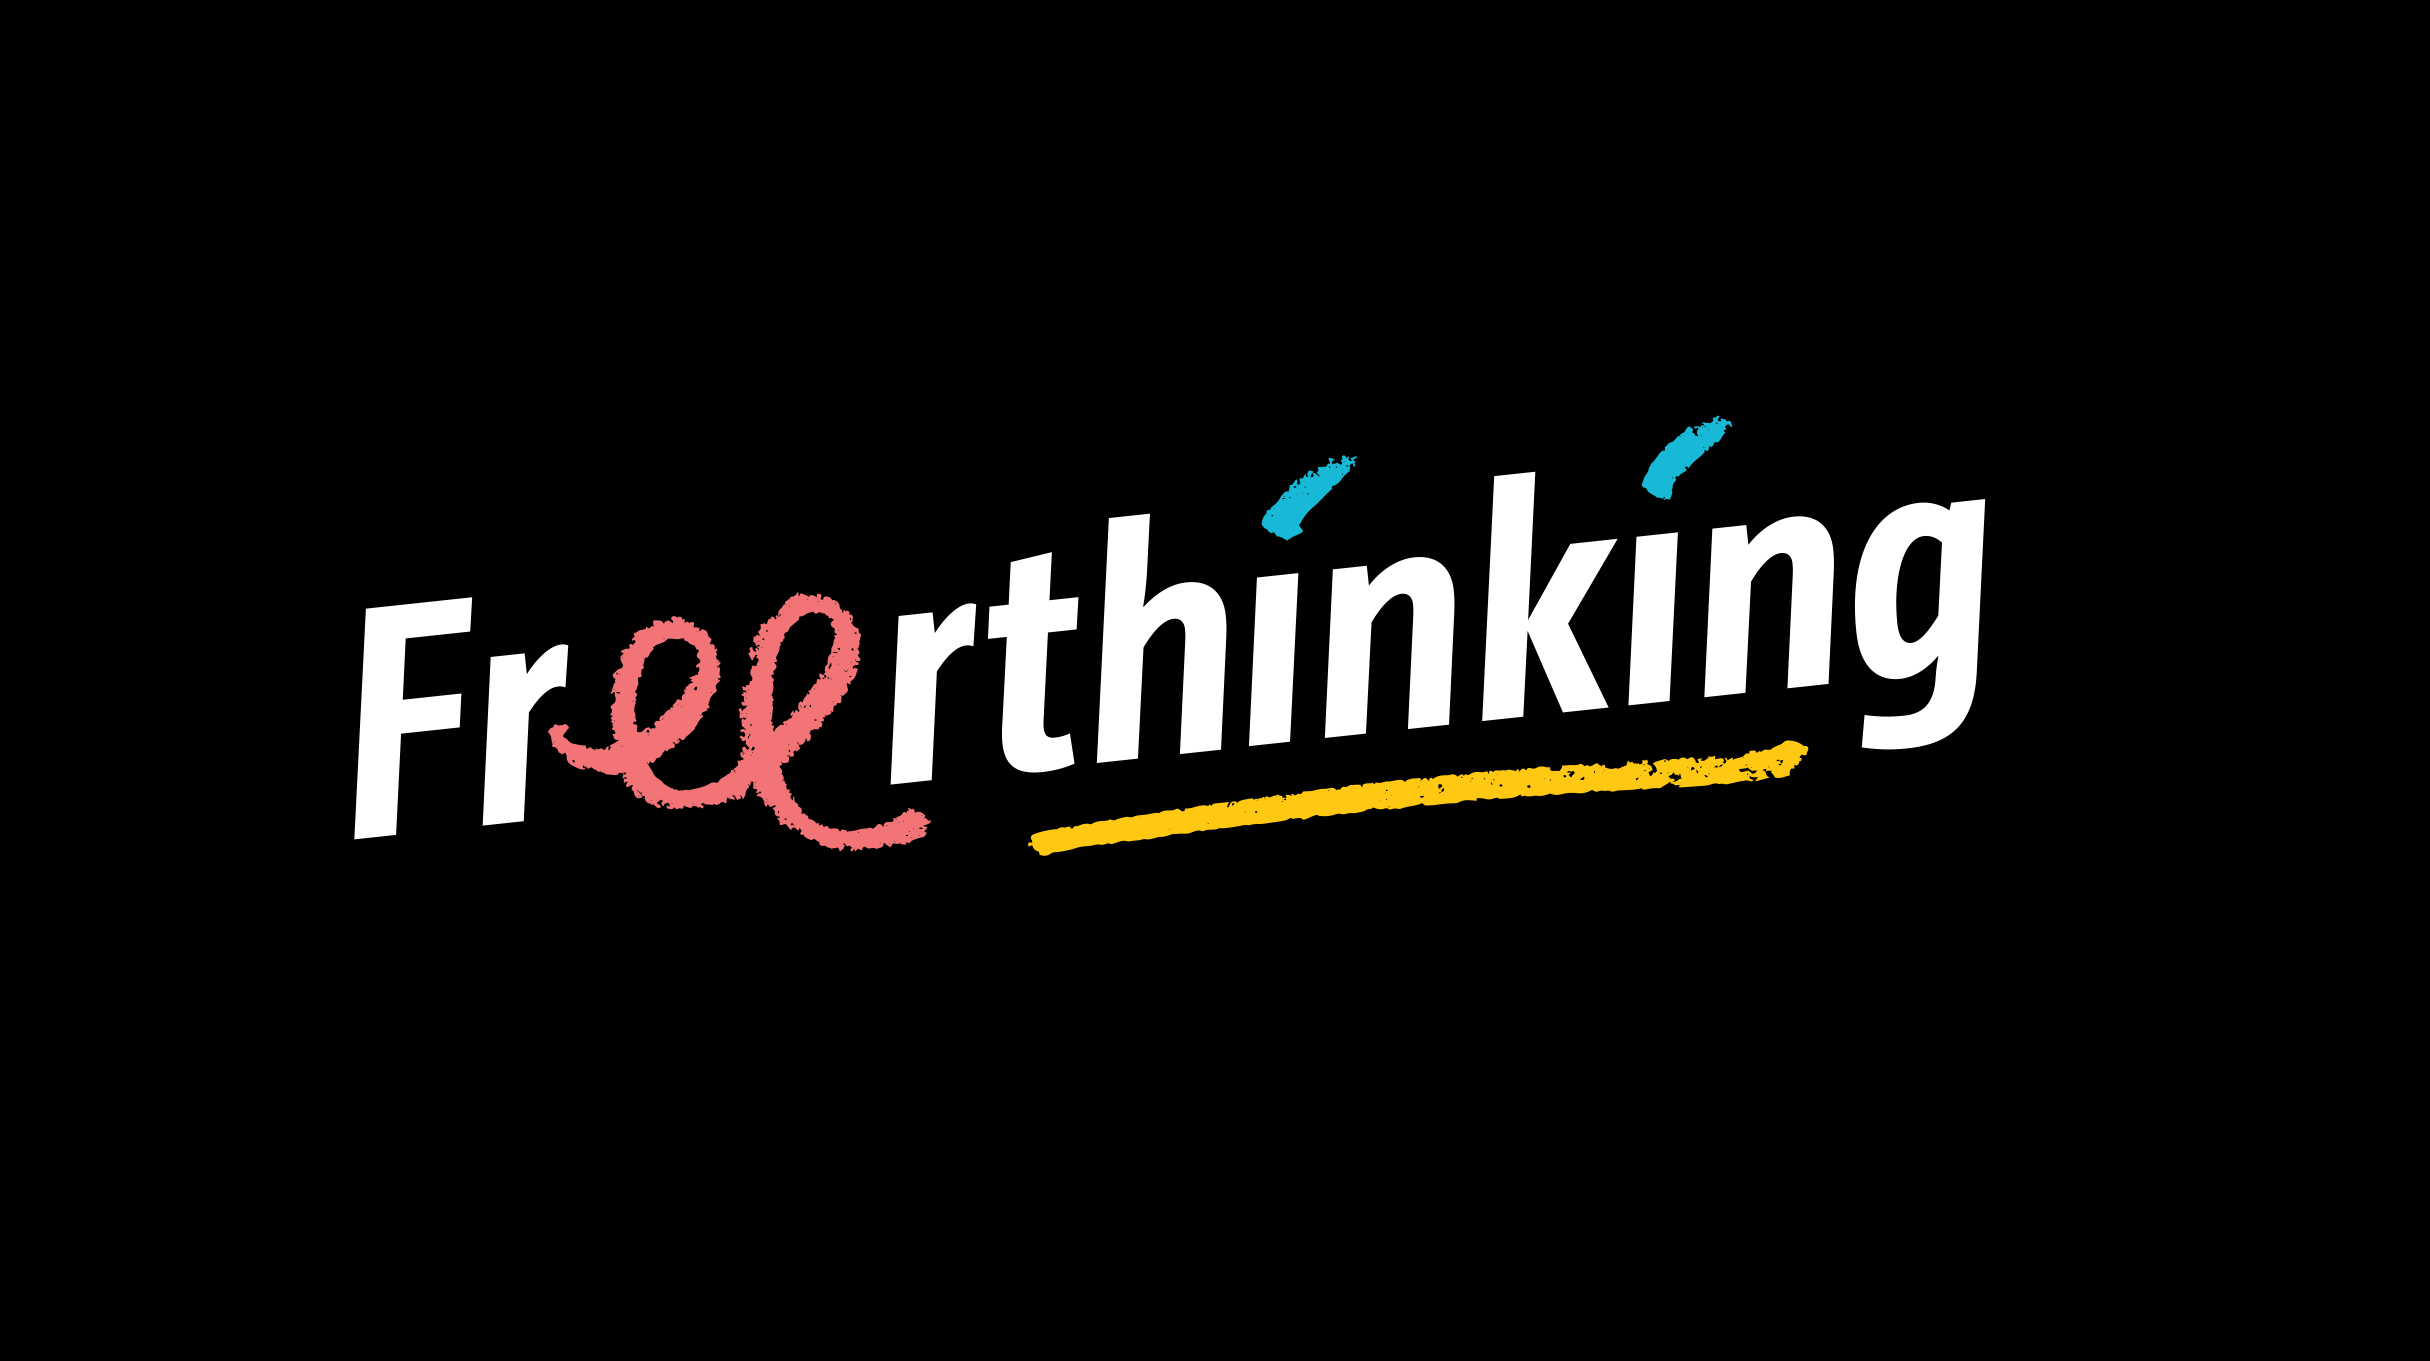 Freerthinking - logo (negative)